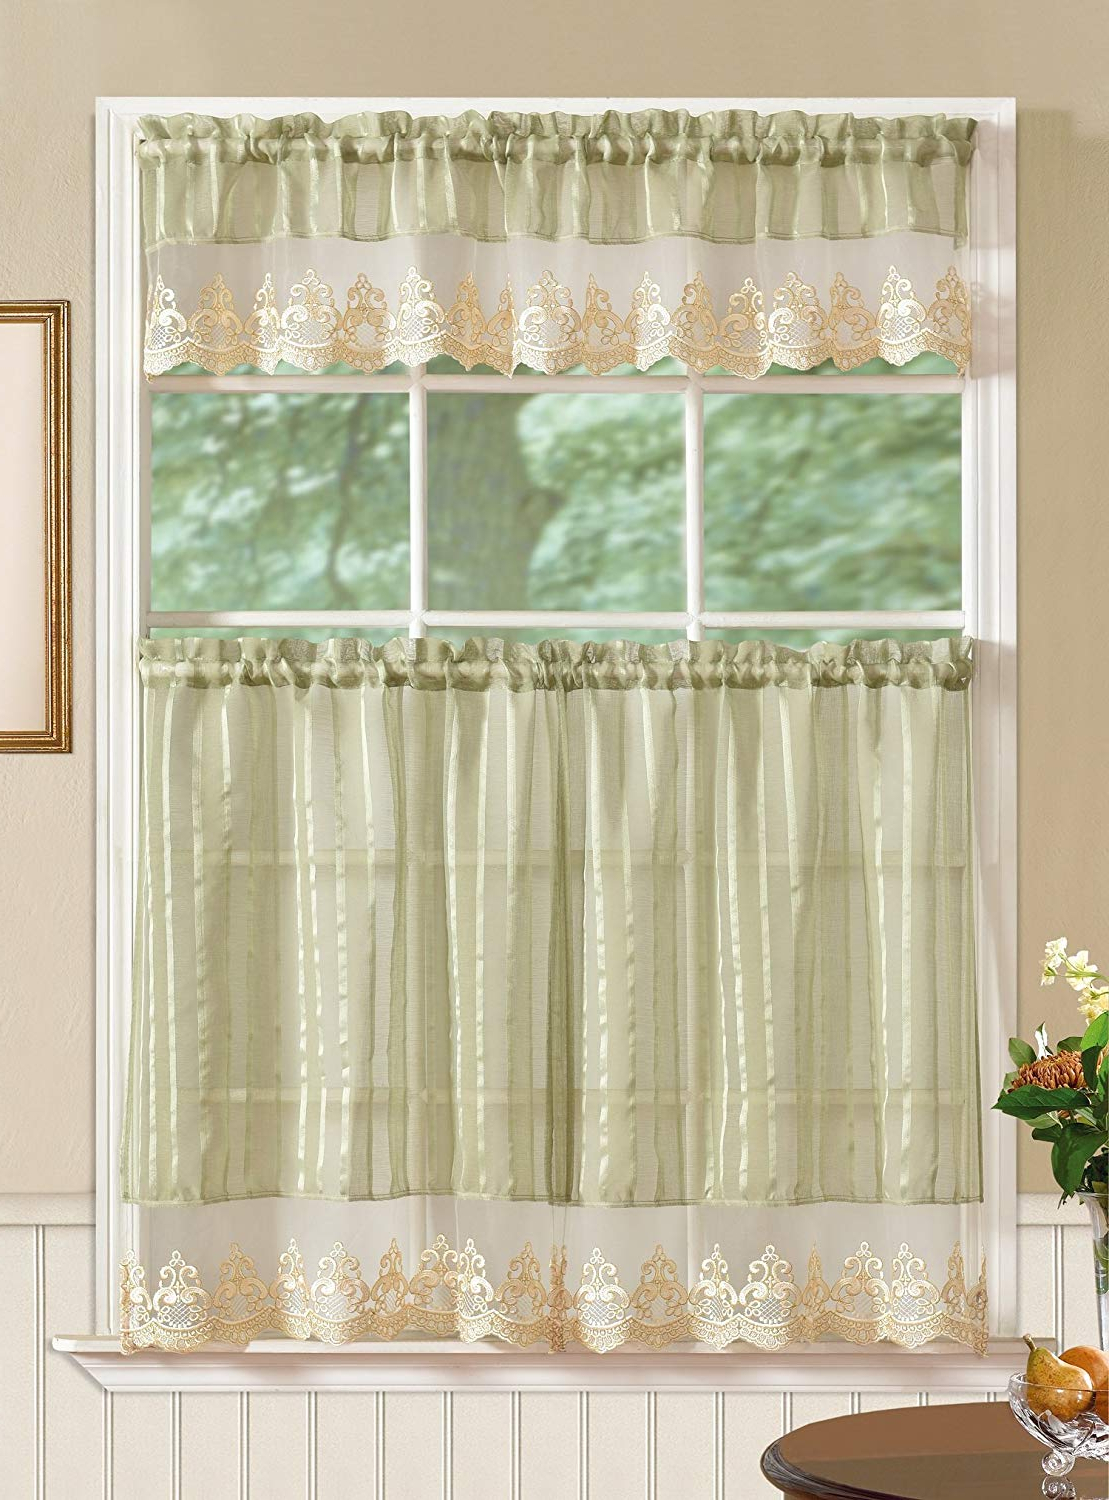 Famous Rt Designers Collection Bella Tier And Valance Kitchen Curtain Set, Grey In Cottage Ivy Curtain Tiers (Gallery 4 of 20)